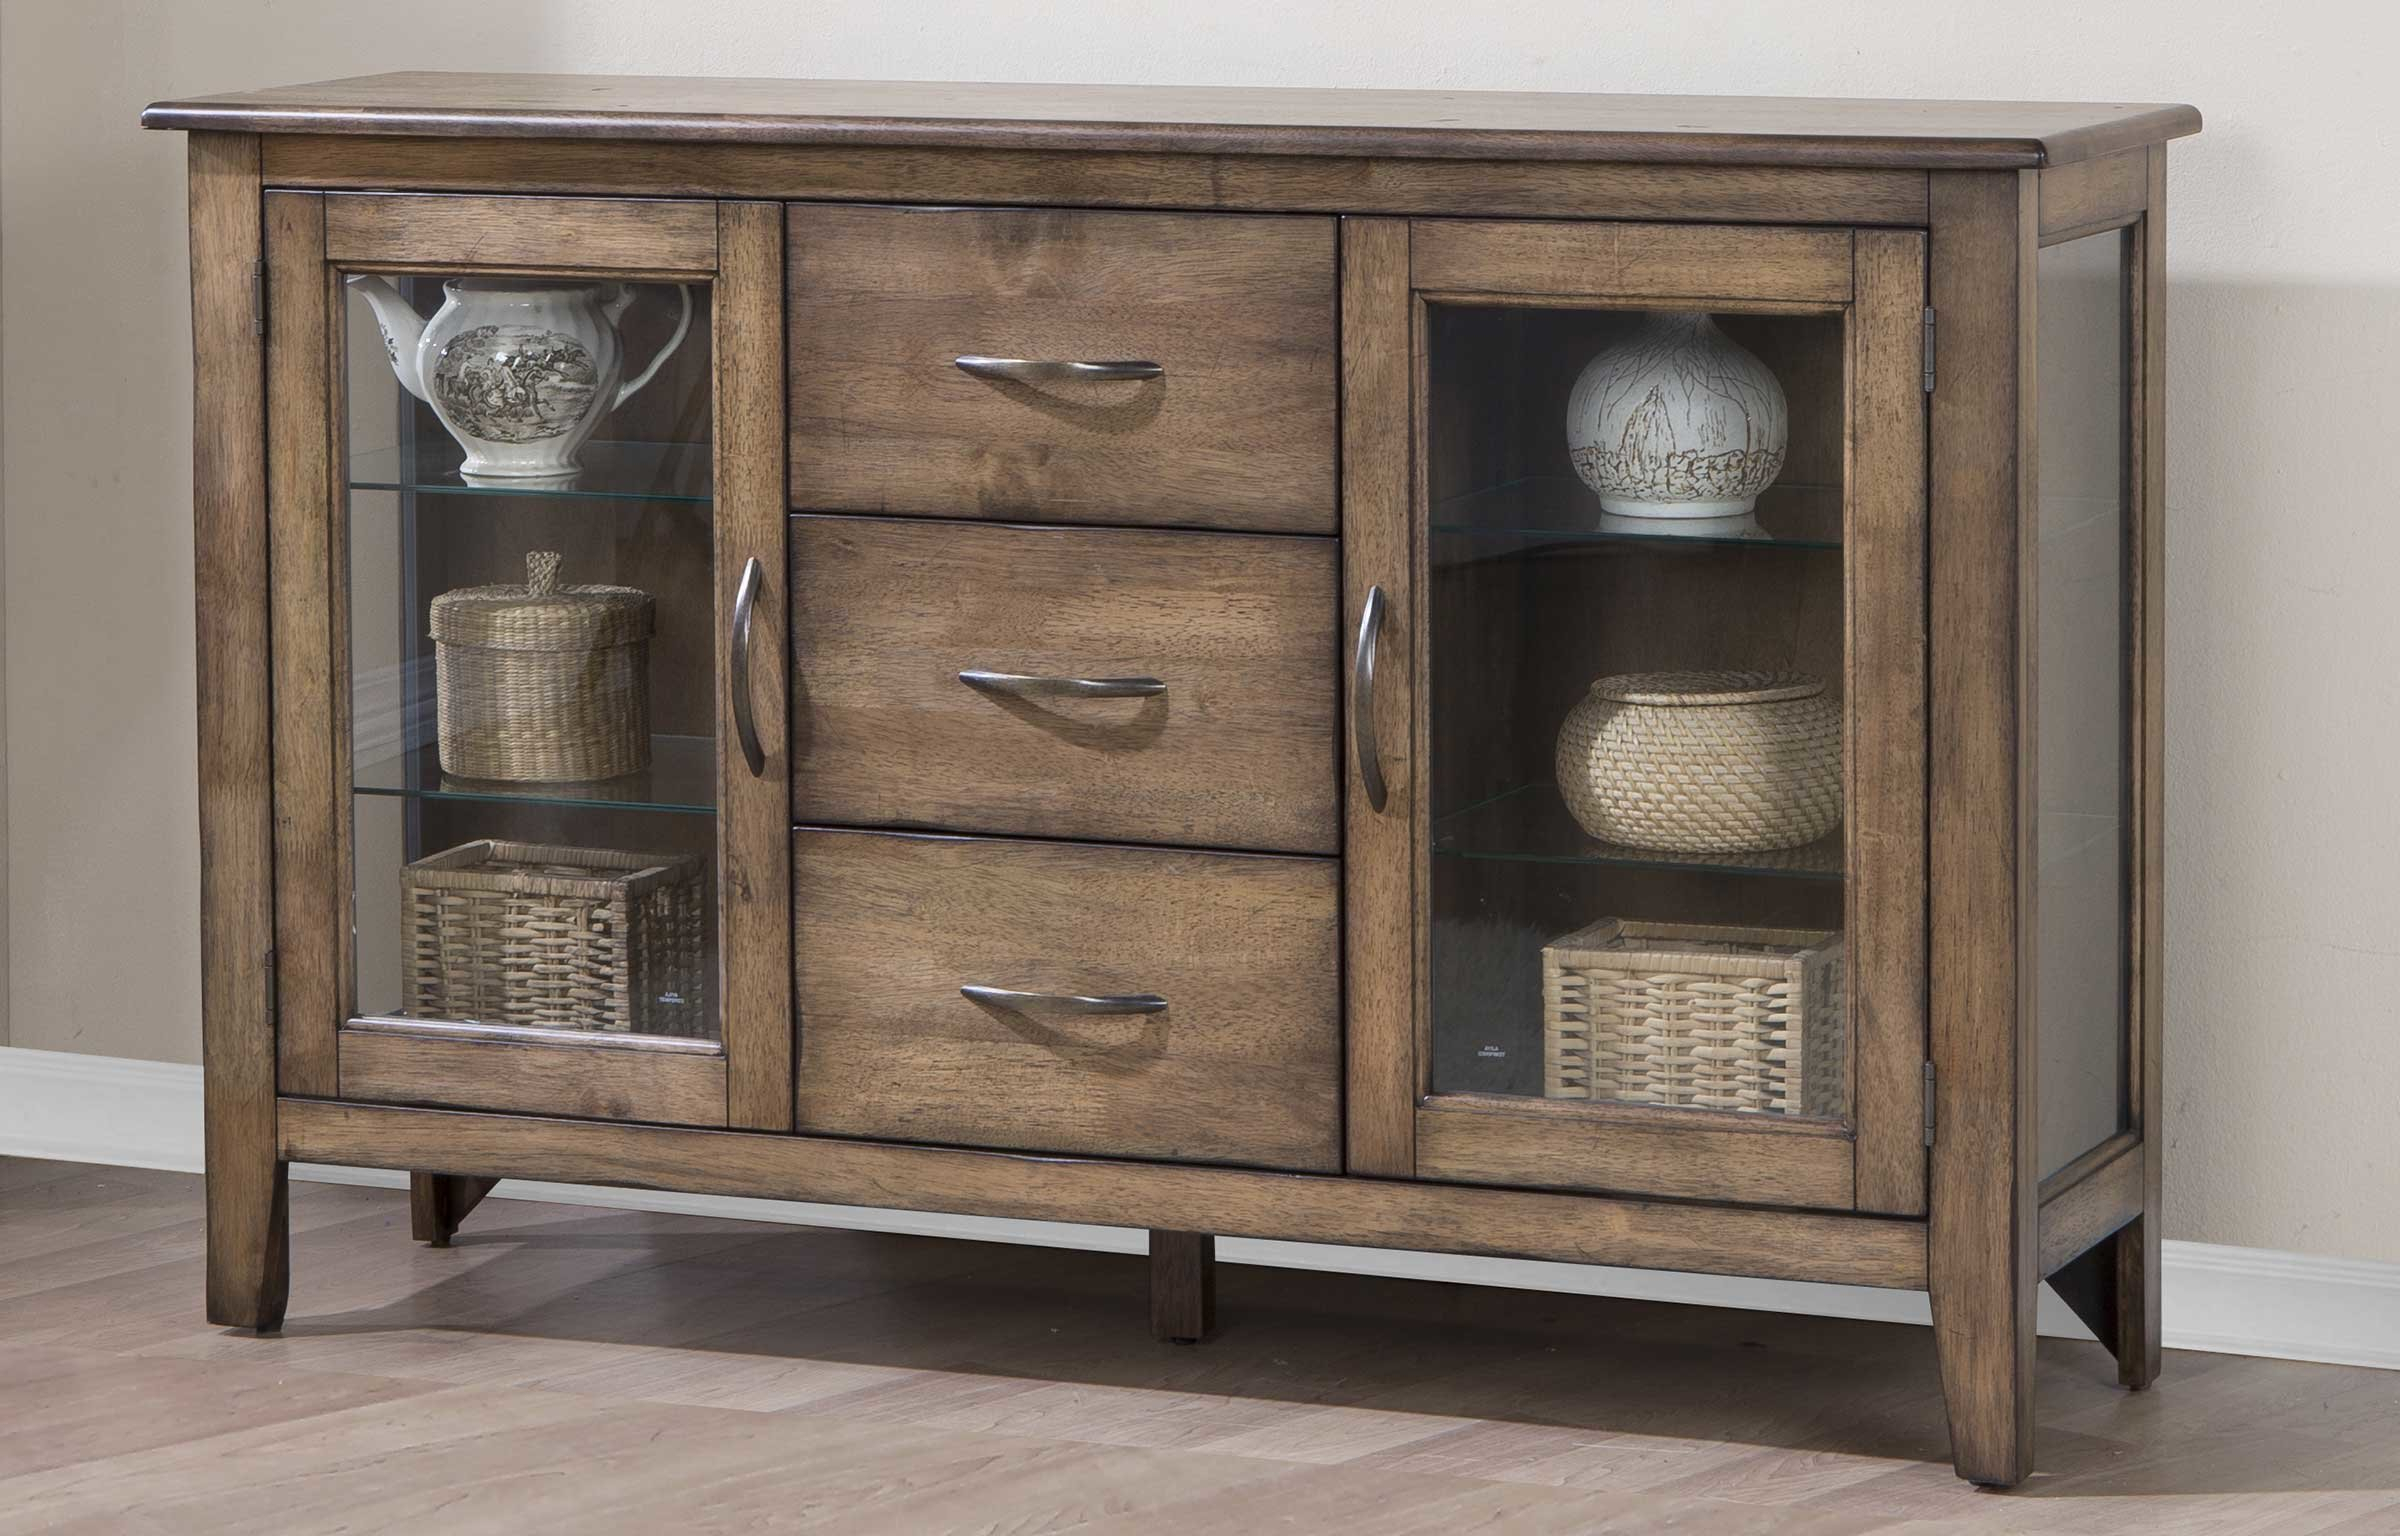 Rutledge Sideboard Intended For Most Recent Casolino Sideboards (#19 of 20)